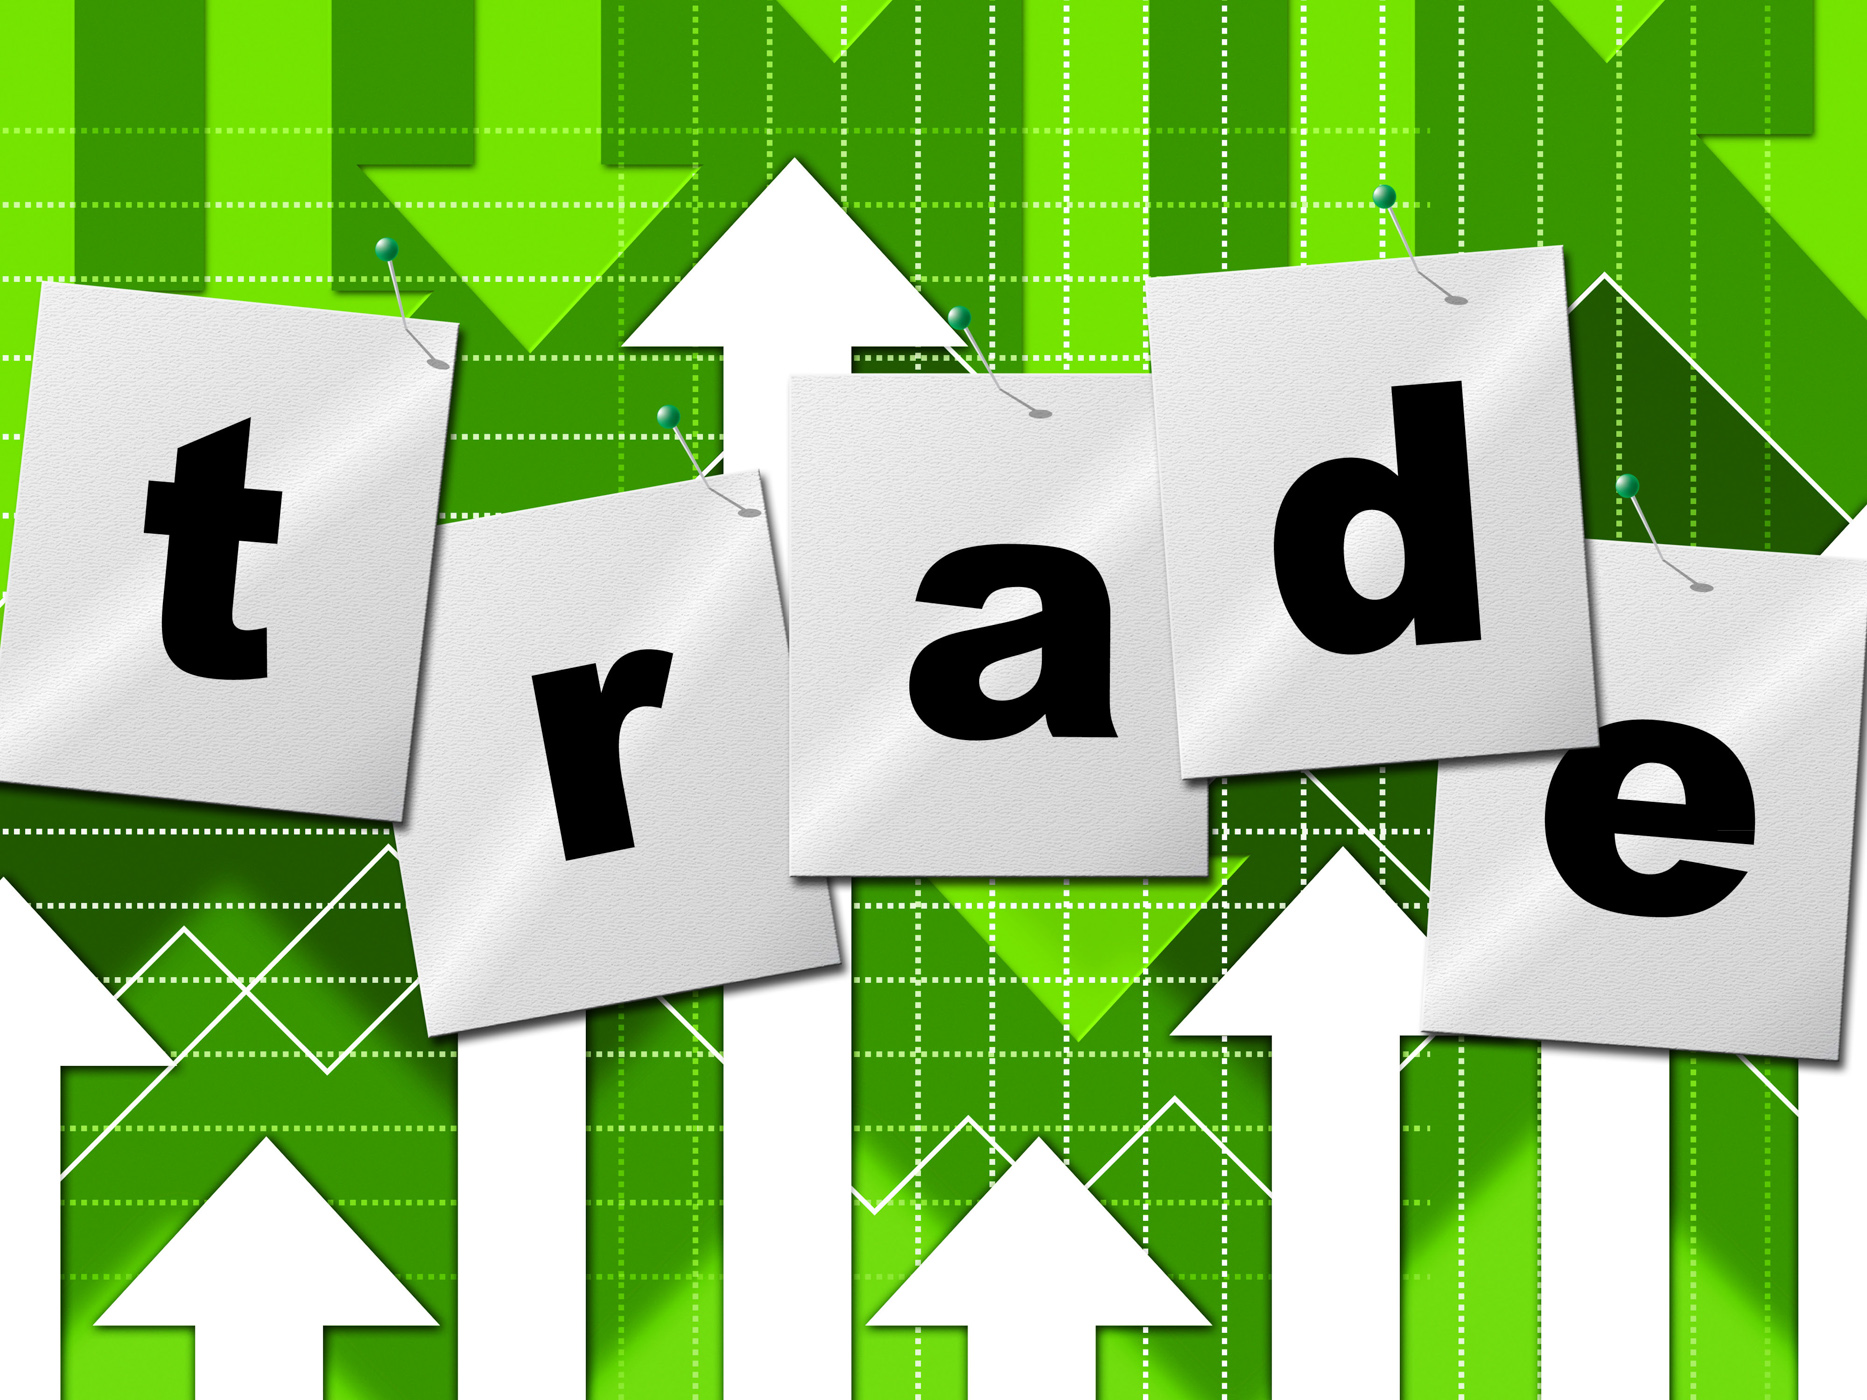 Trading trade means selling import and buying photo